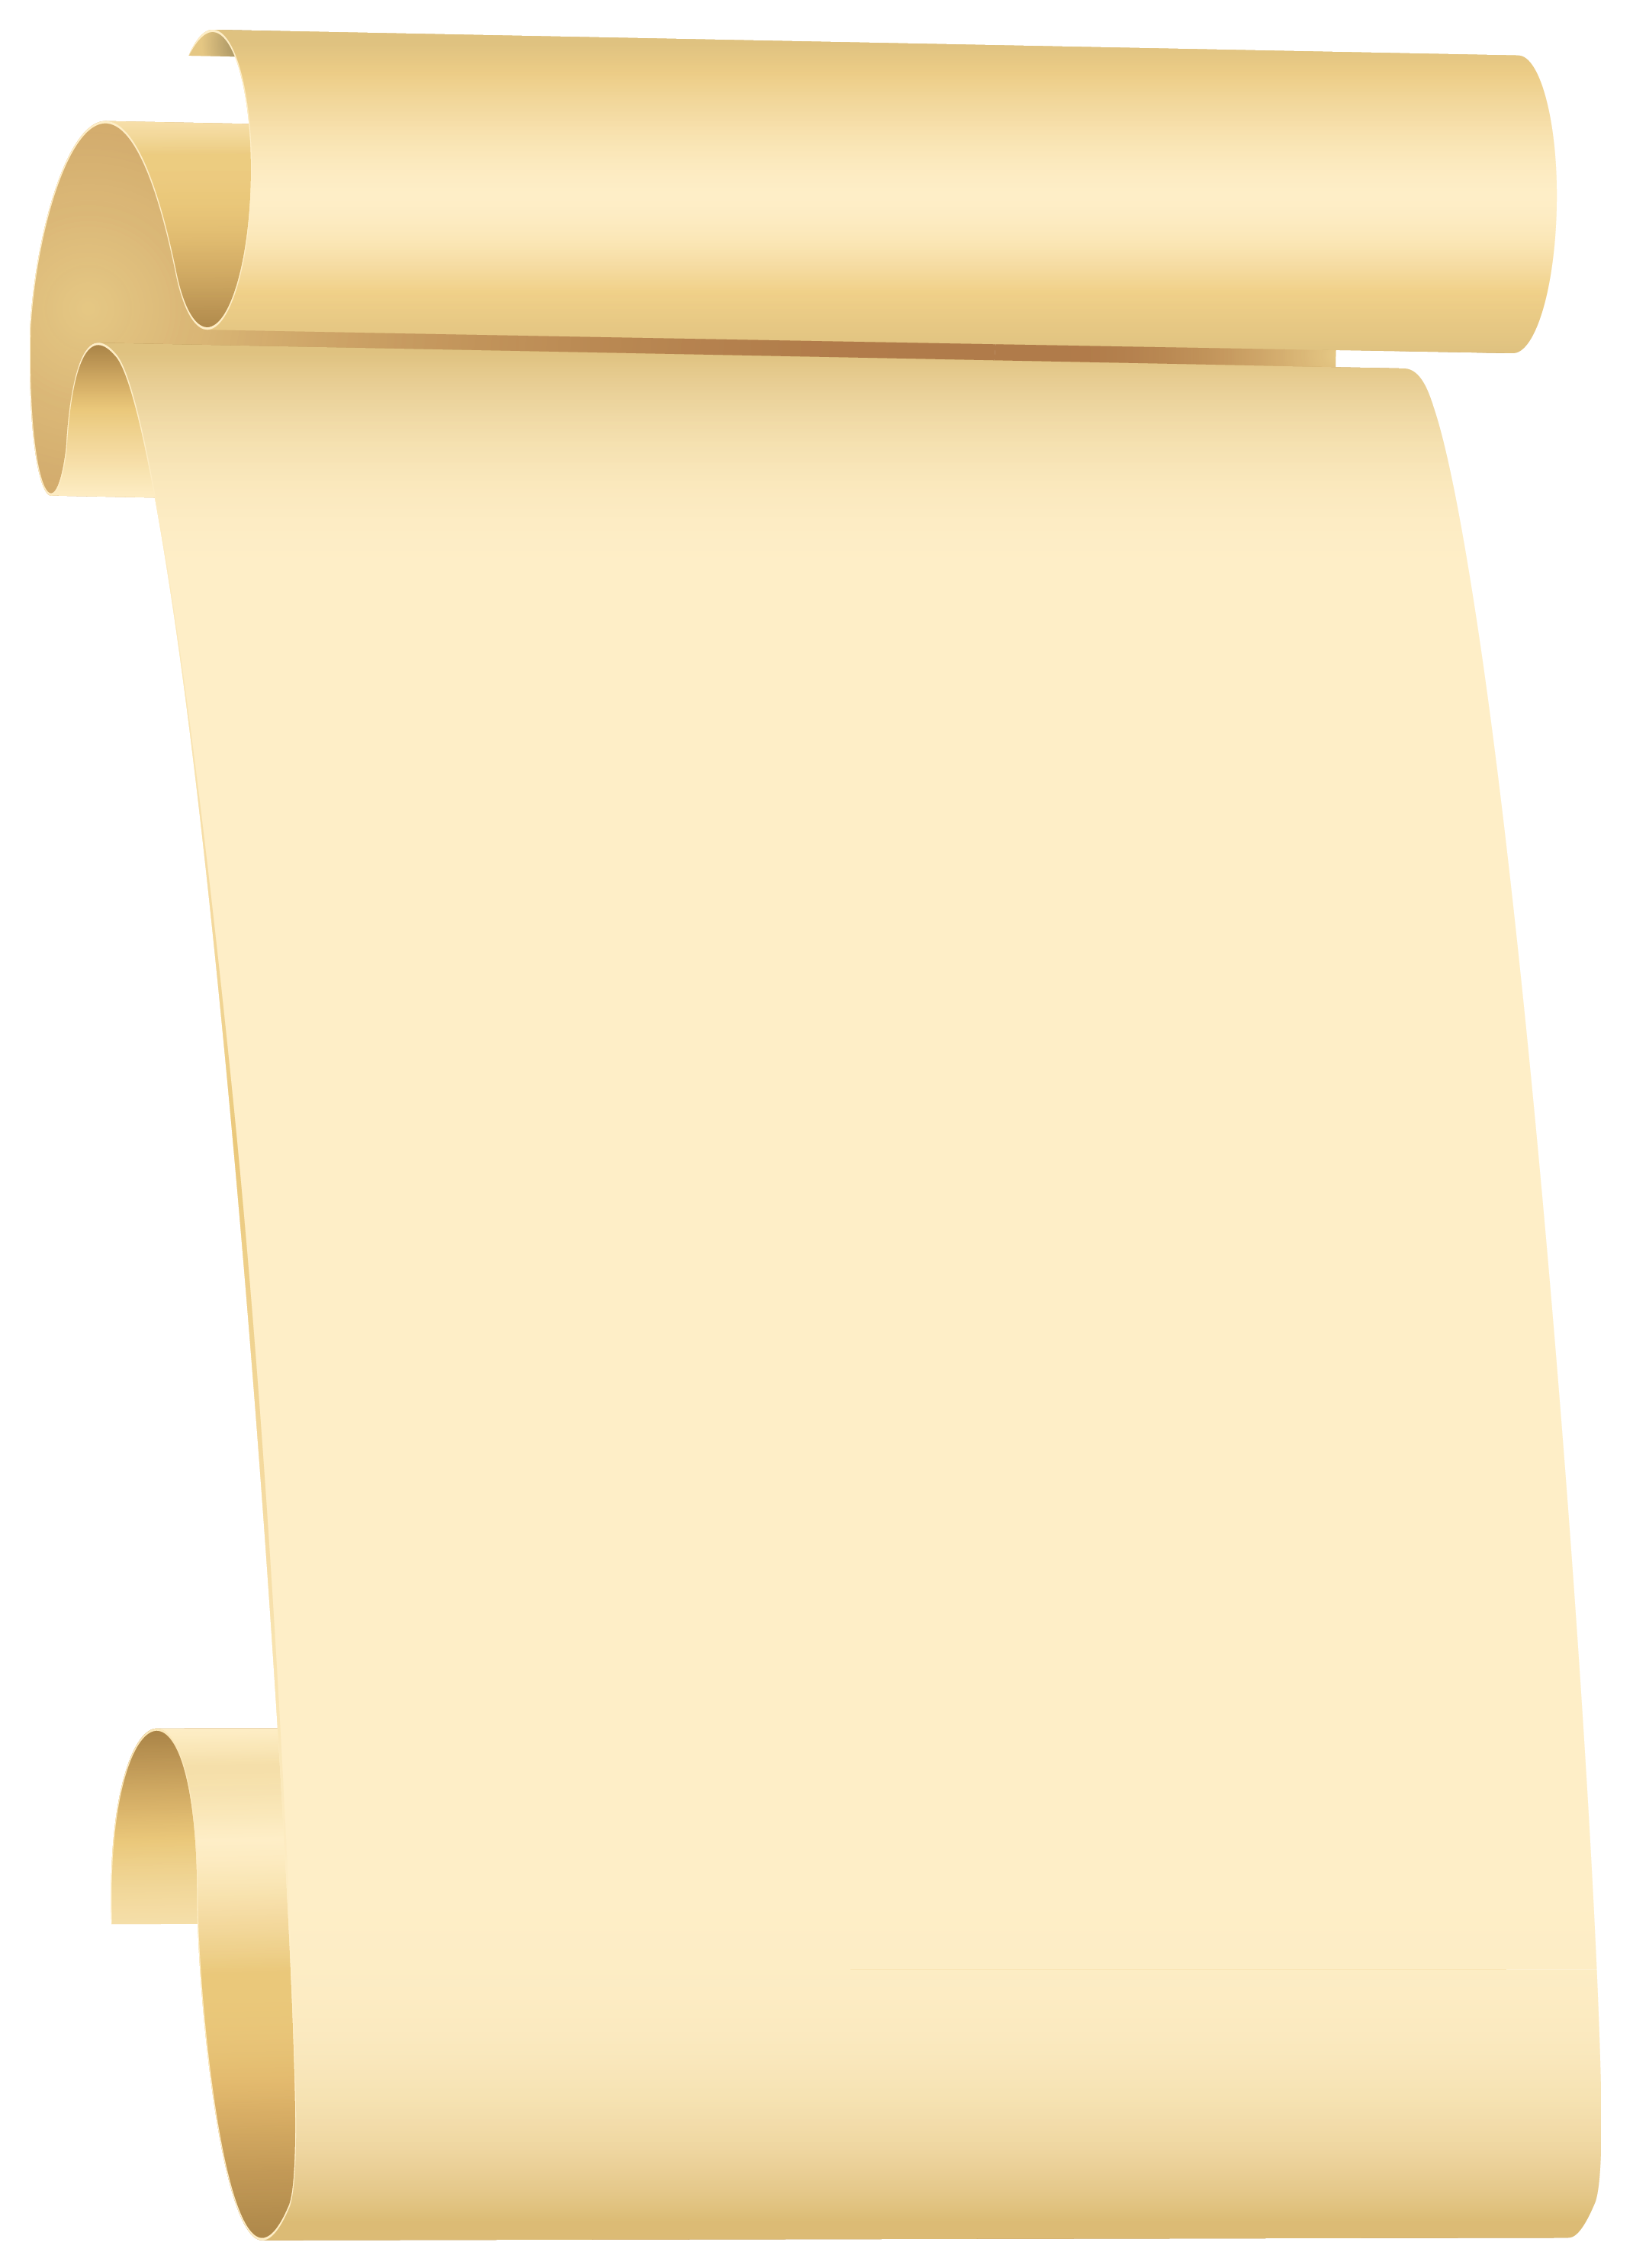 Png image gallery yopriceville. Scroll clipart parchment